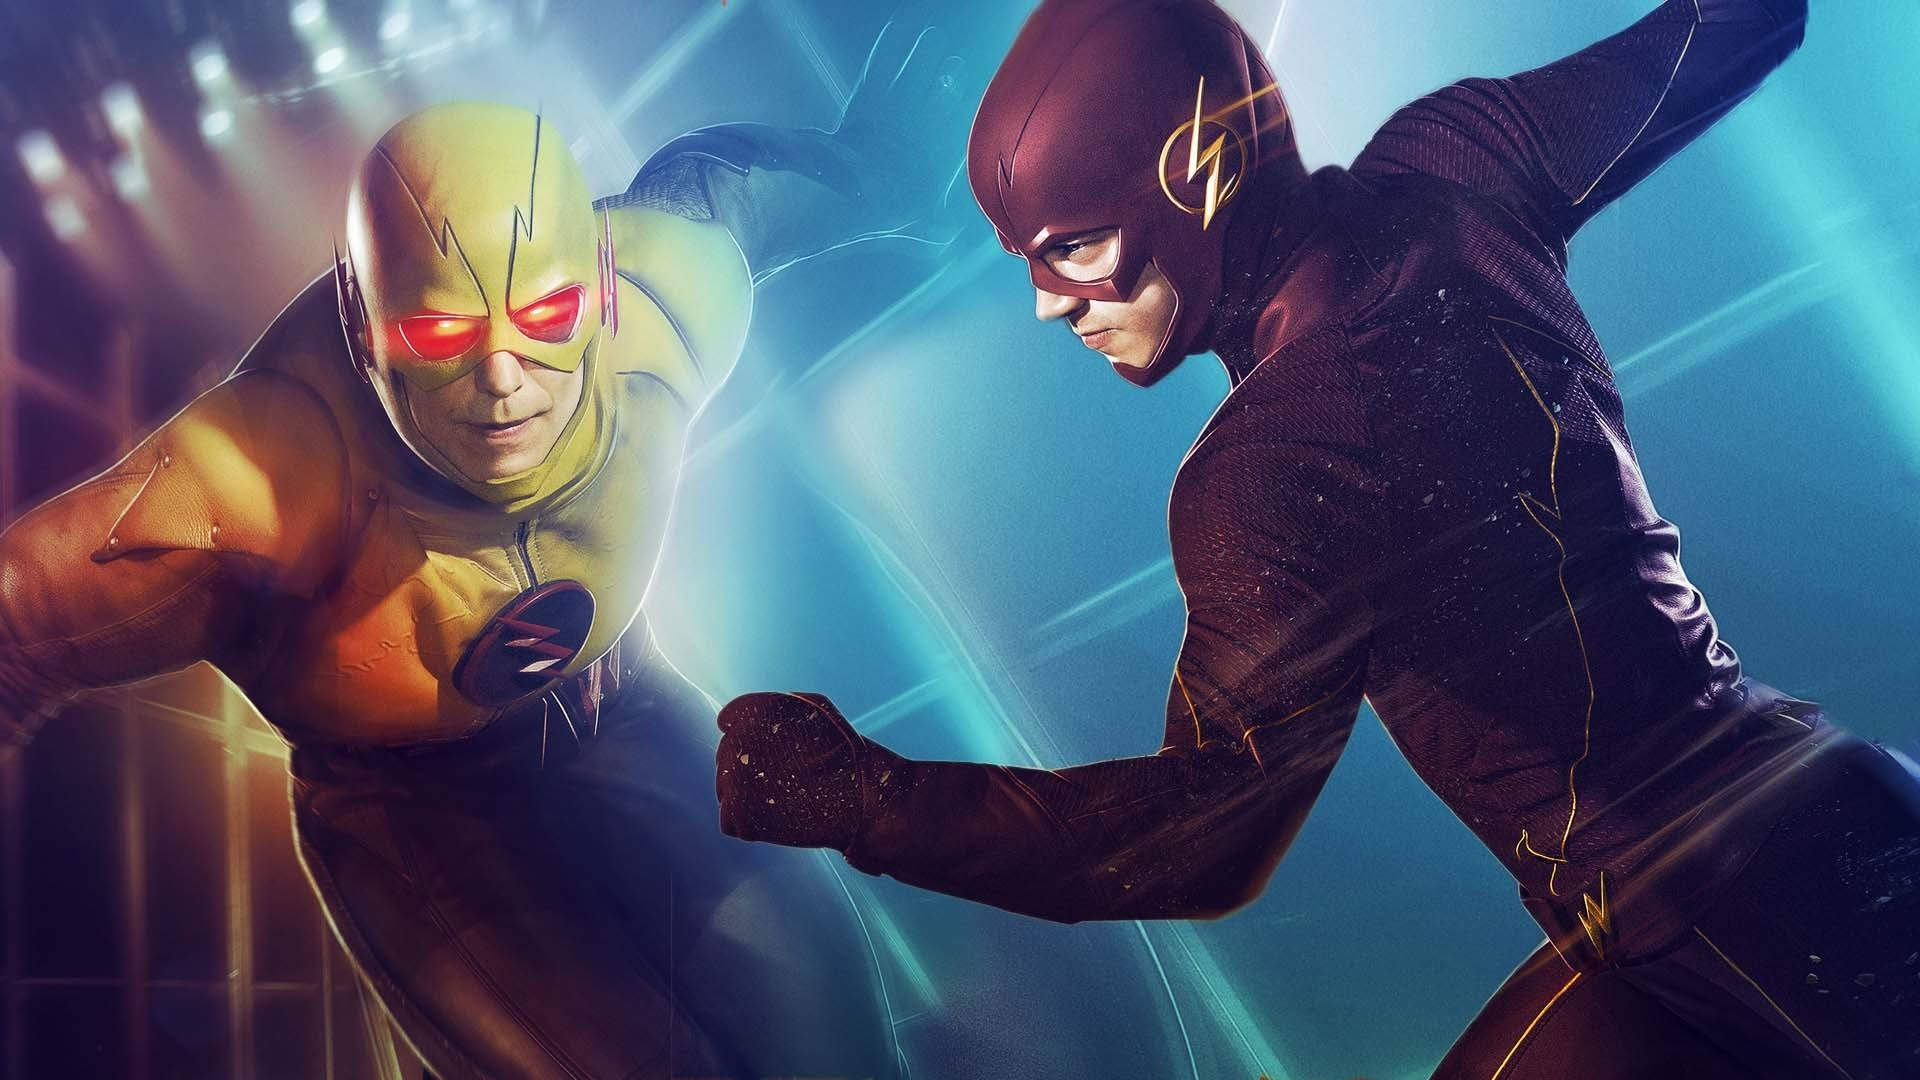 the flash wallpapers for ipad